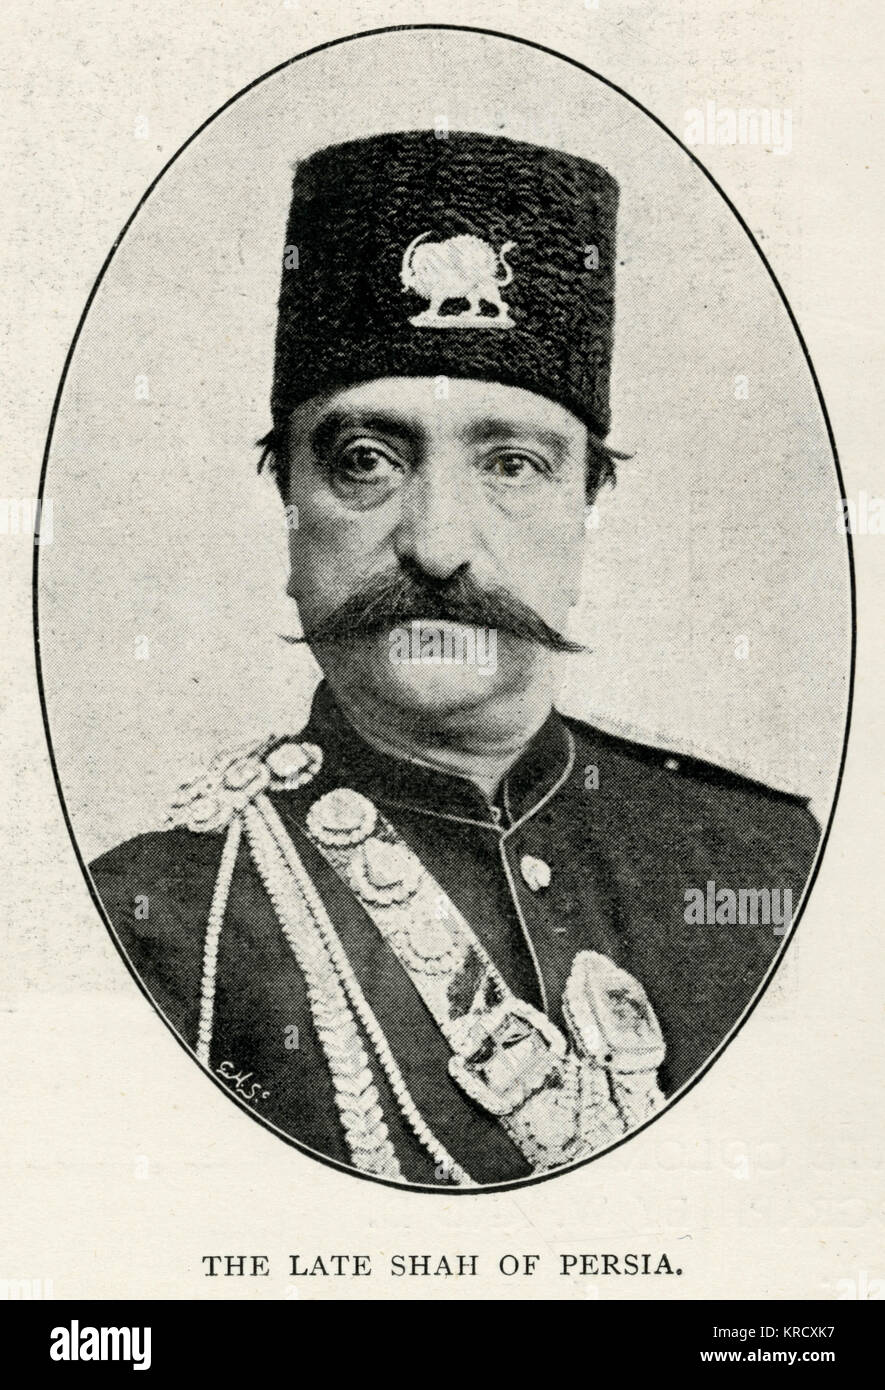 Naser al-Din Shah Qajar (1831 - 1896), King of Persia from 5 September 1848 to 1 May 1896 when he was assassinated. - Stock Image